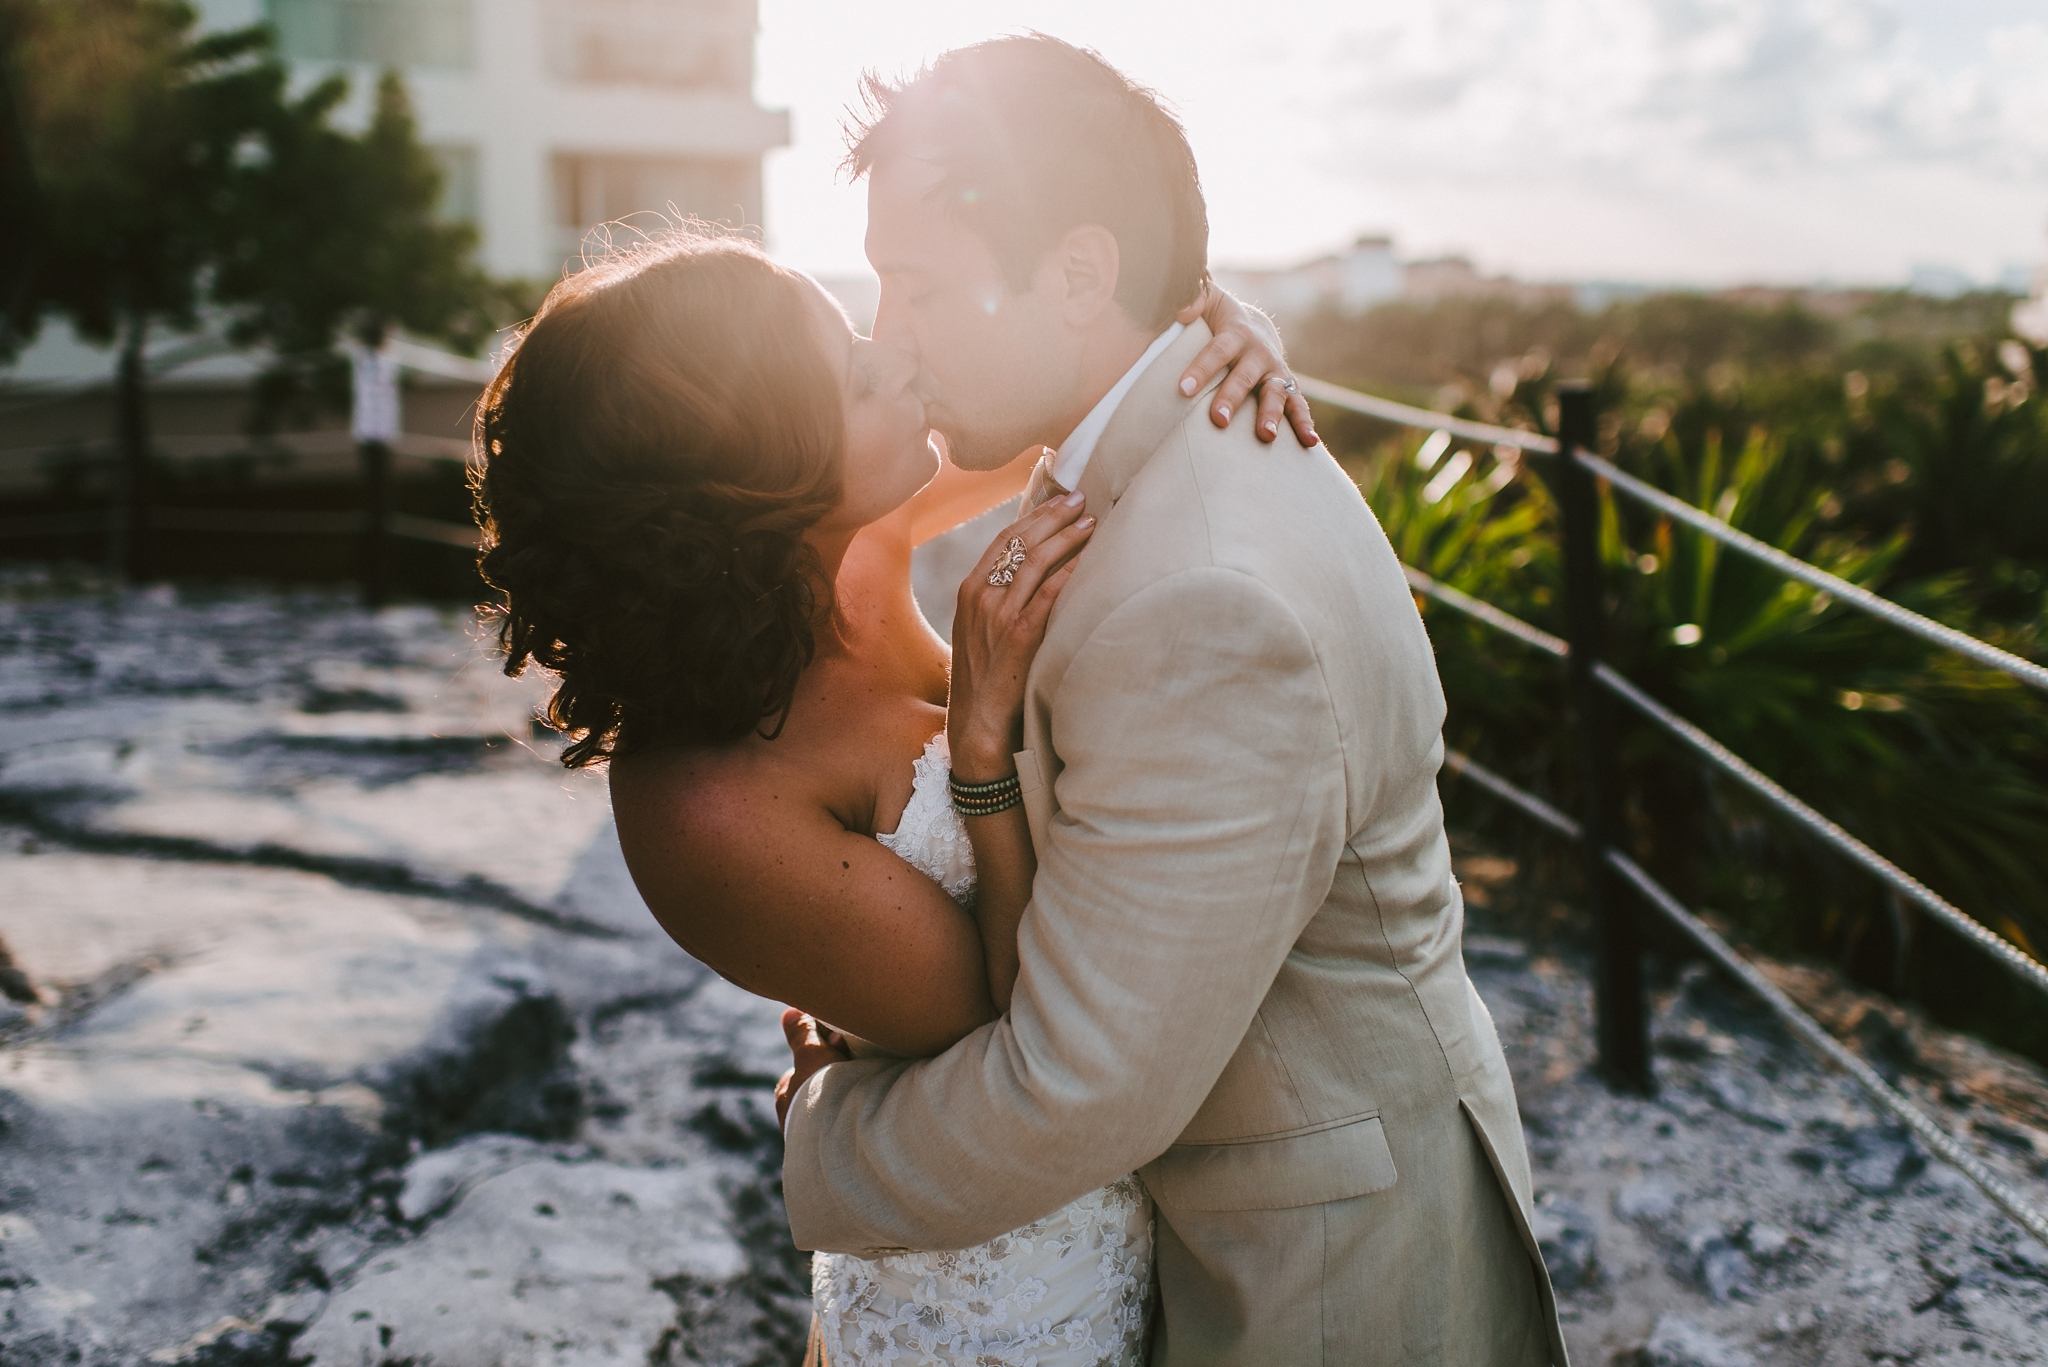 kaihla_tonai_intimate_wedding_elopement_photographer_1159